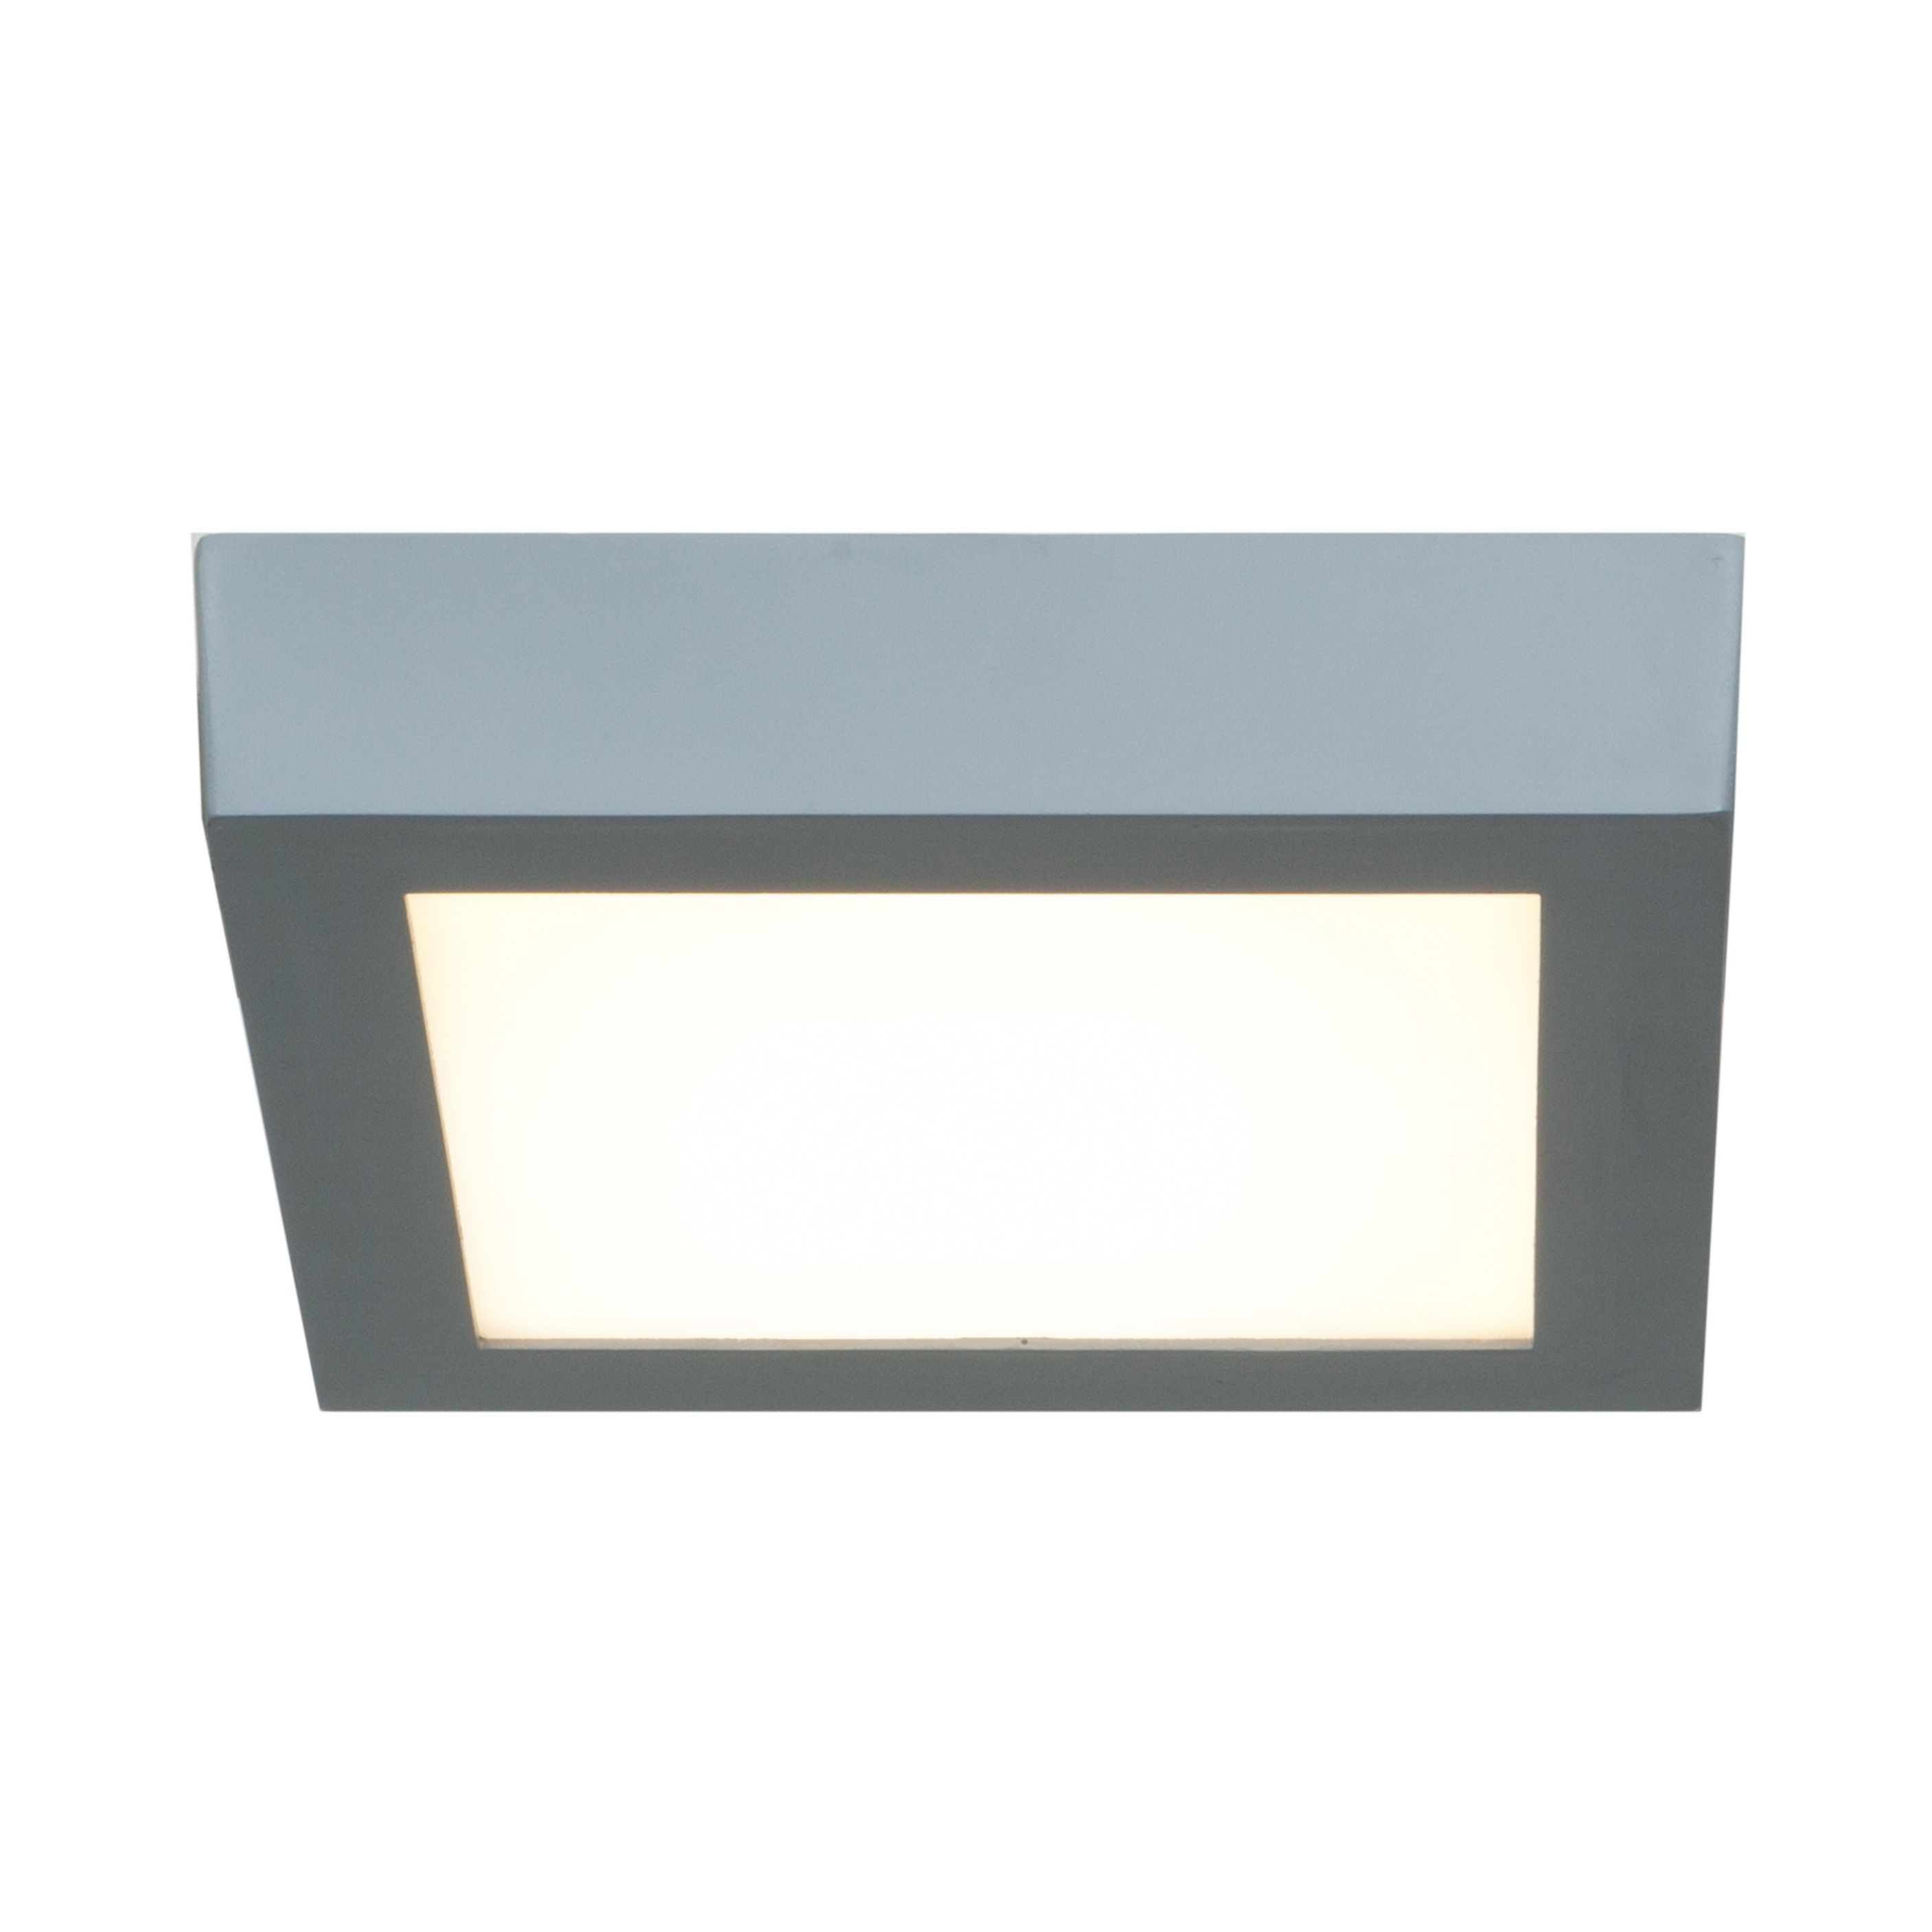 Access Lighting Strike LED Square 7-inch Flush Mount, Silver (Silver ...